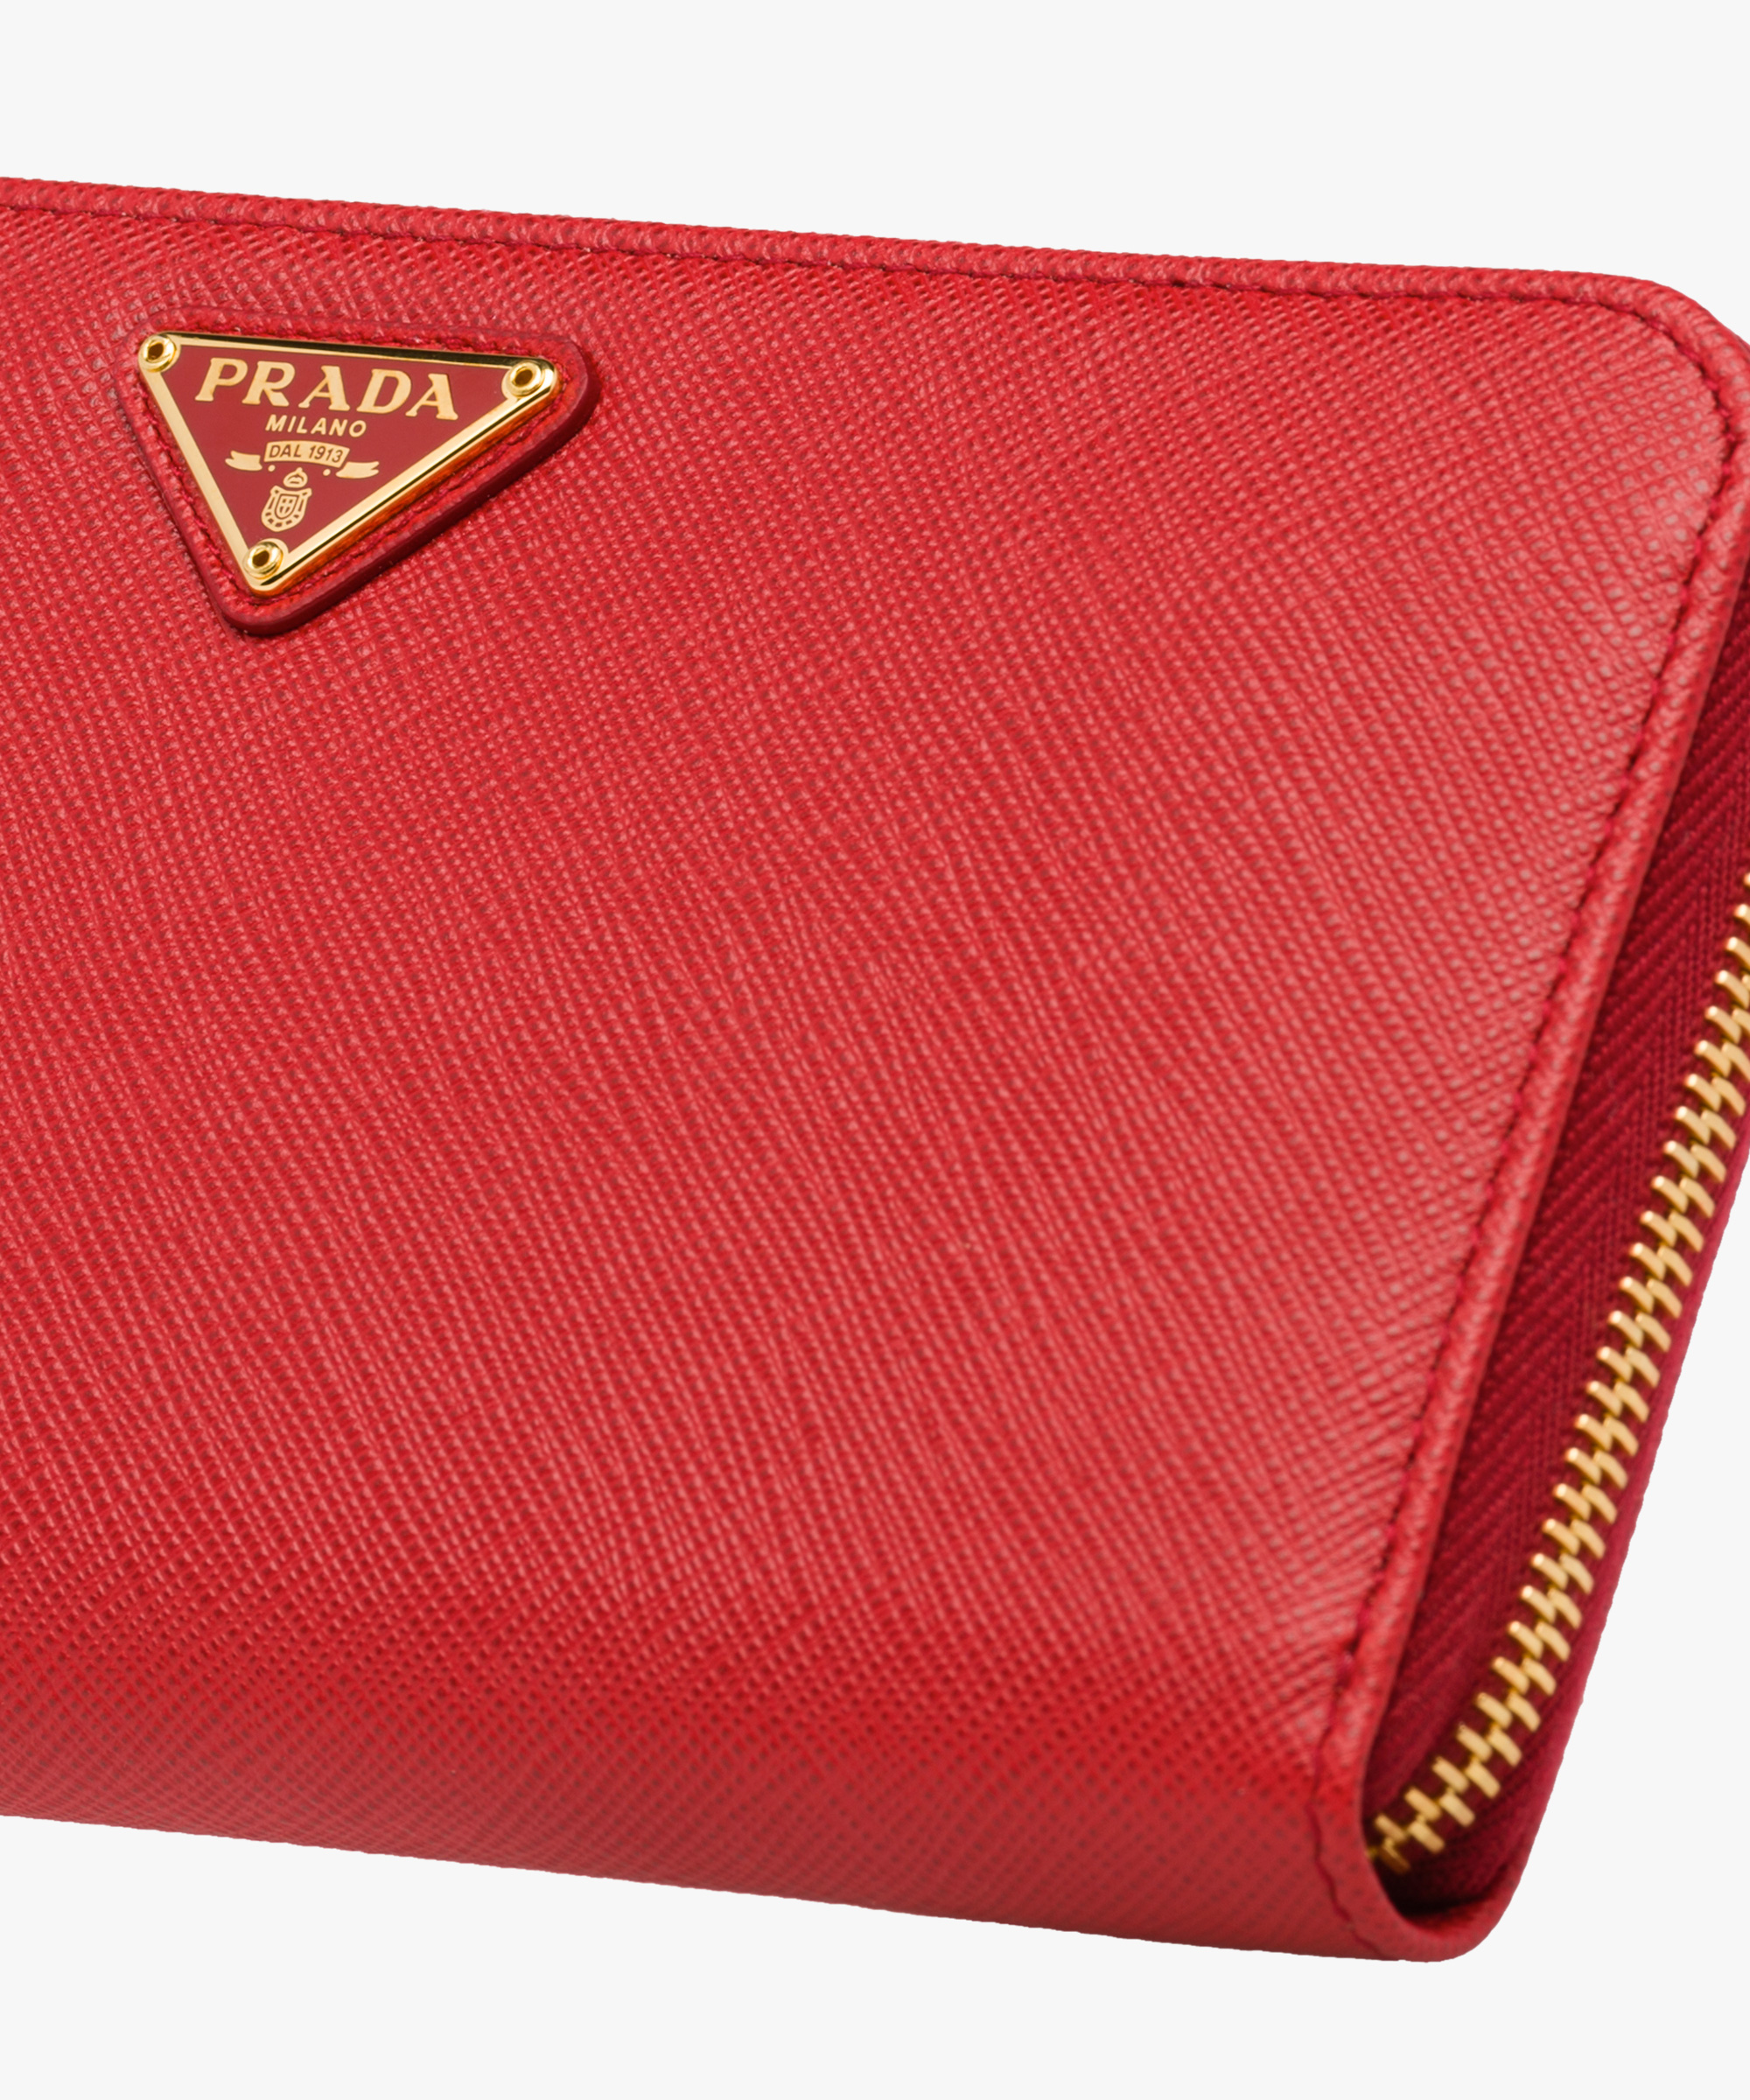 b62b76a107e1b4 ... Large Saffiano Leather Wallet Prada FIERY RED ...